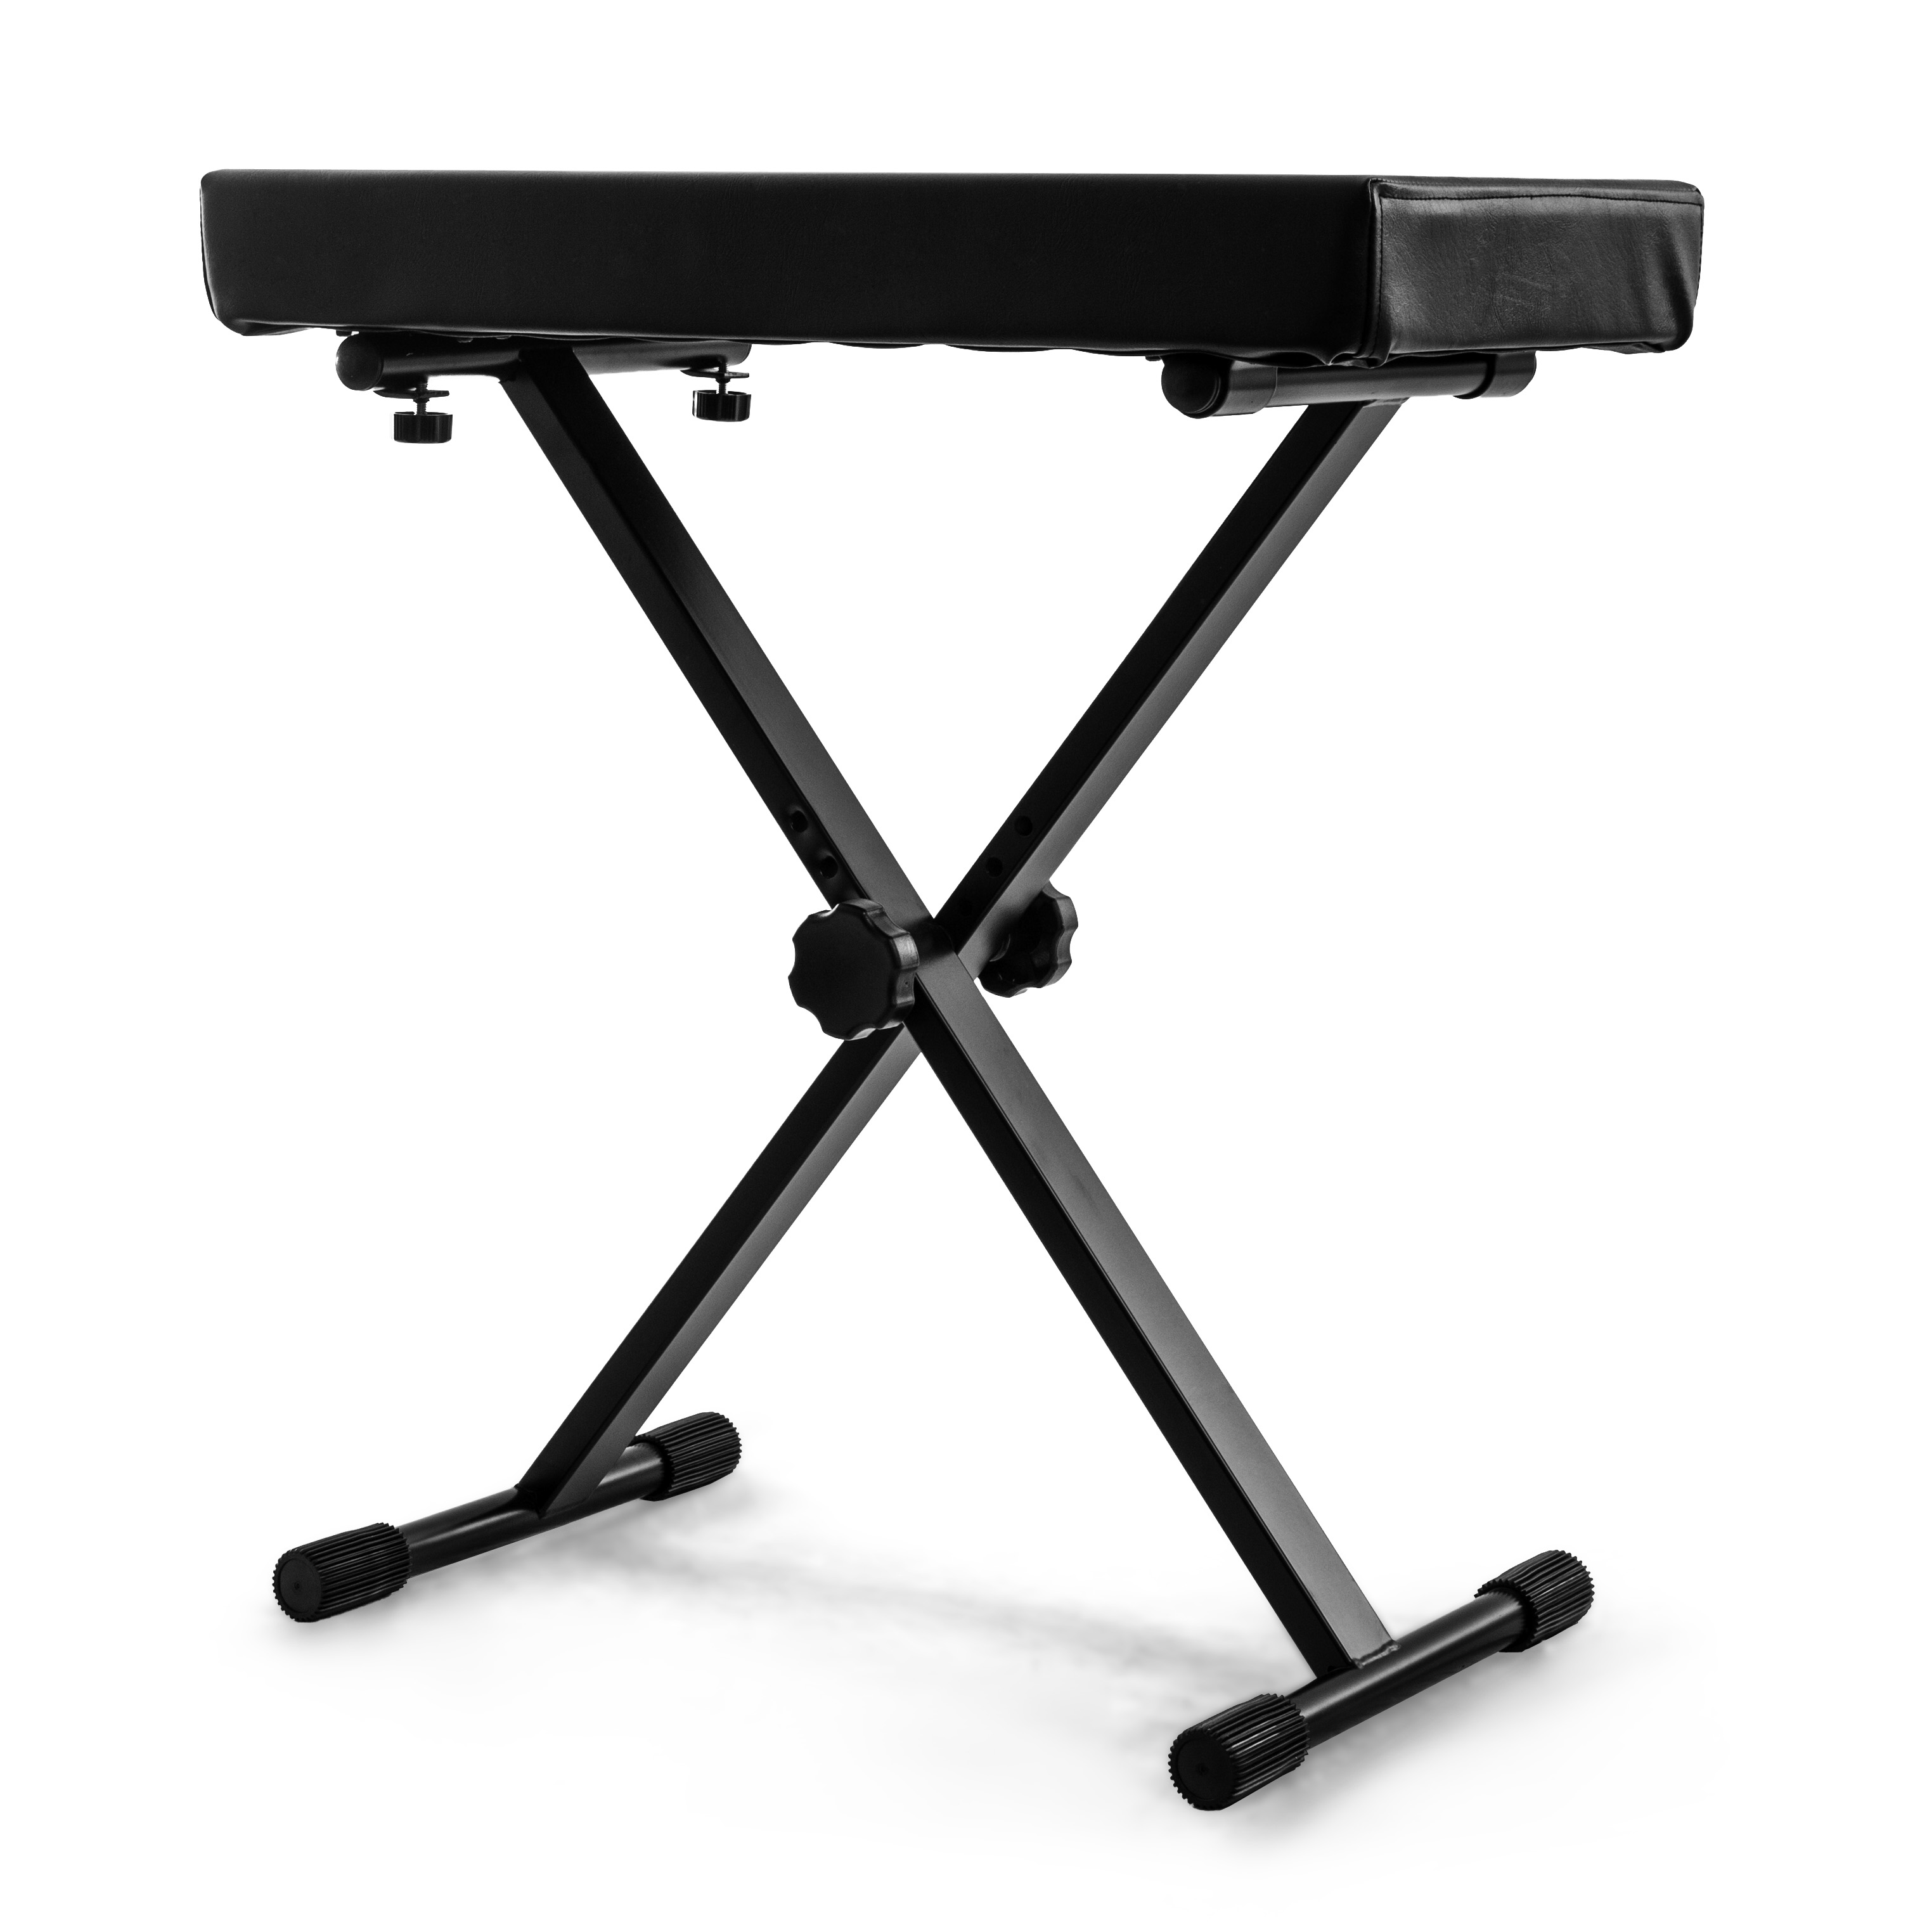 Nomad NKB-5501 Deluxe Extended Height X-Style Keyboard Bench